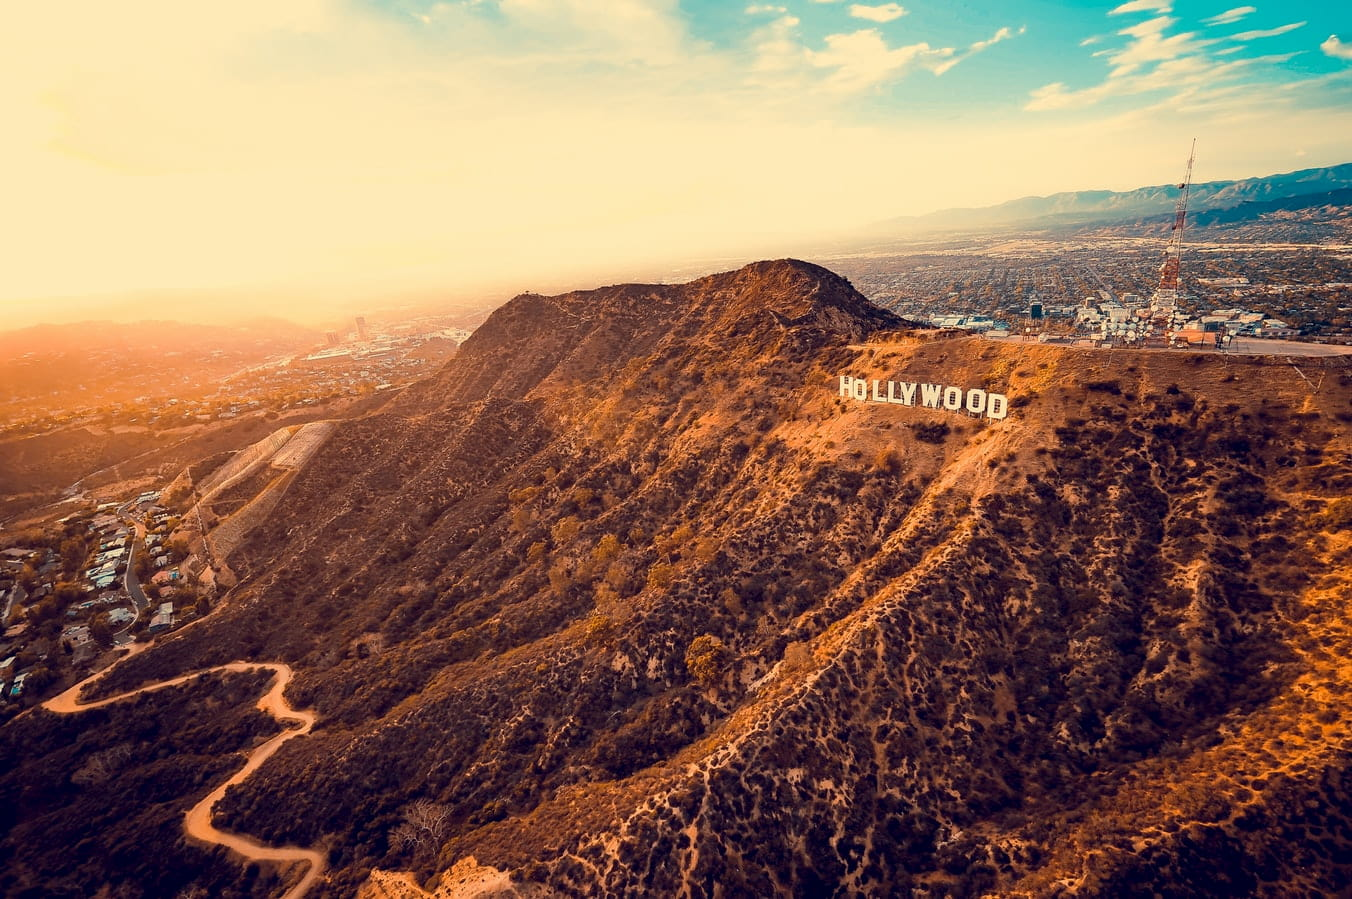 the Hollywood sign in Hollywood, Los Angeles